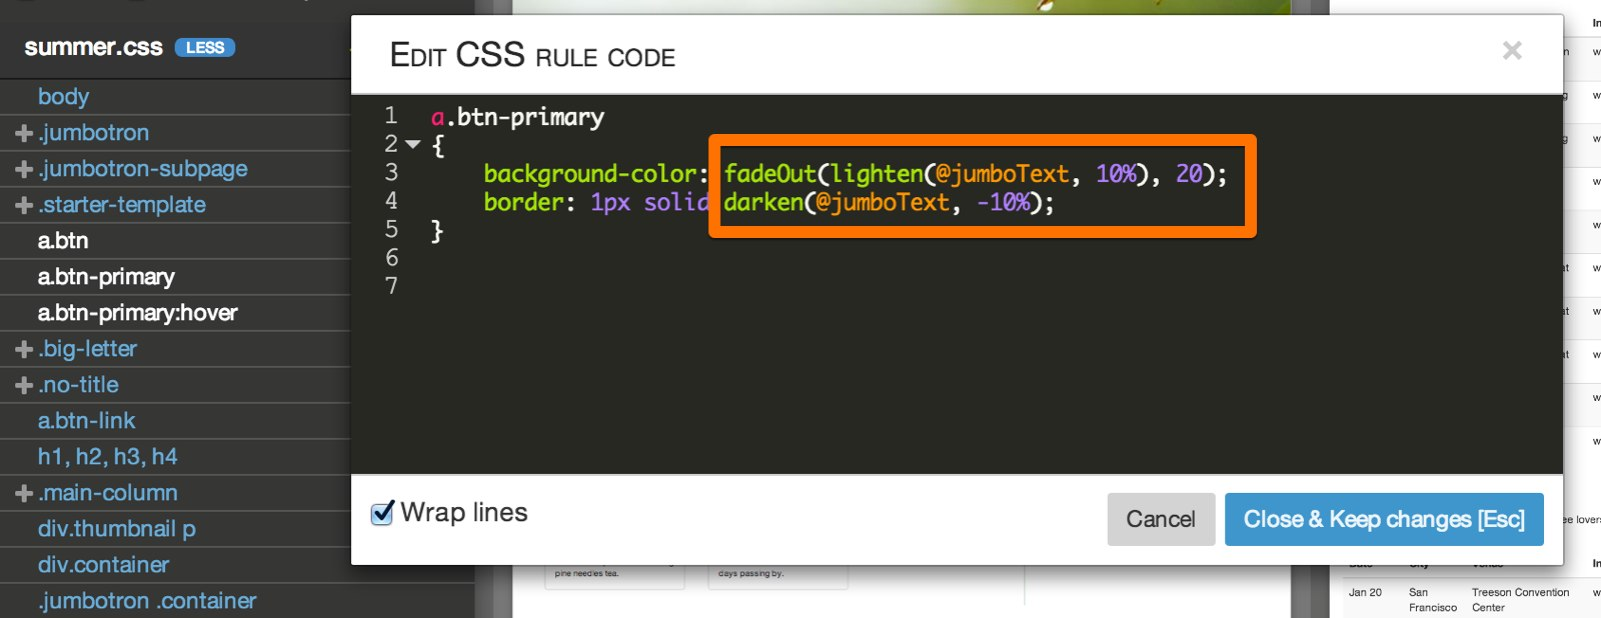 using variables in css rules pinegrow web editor